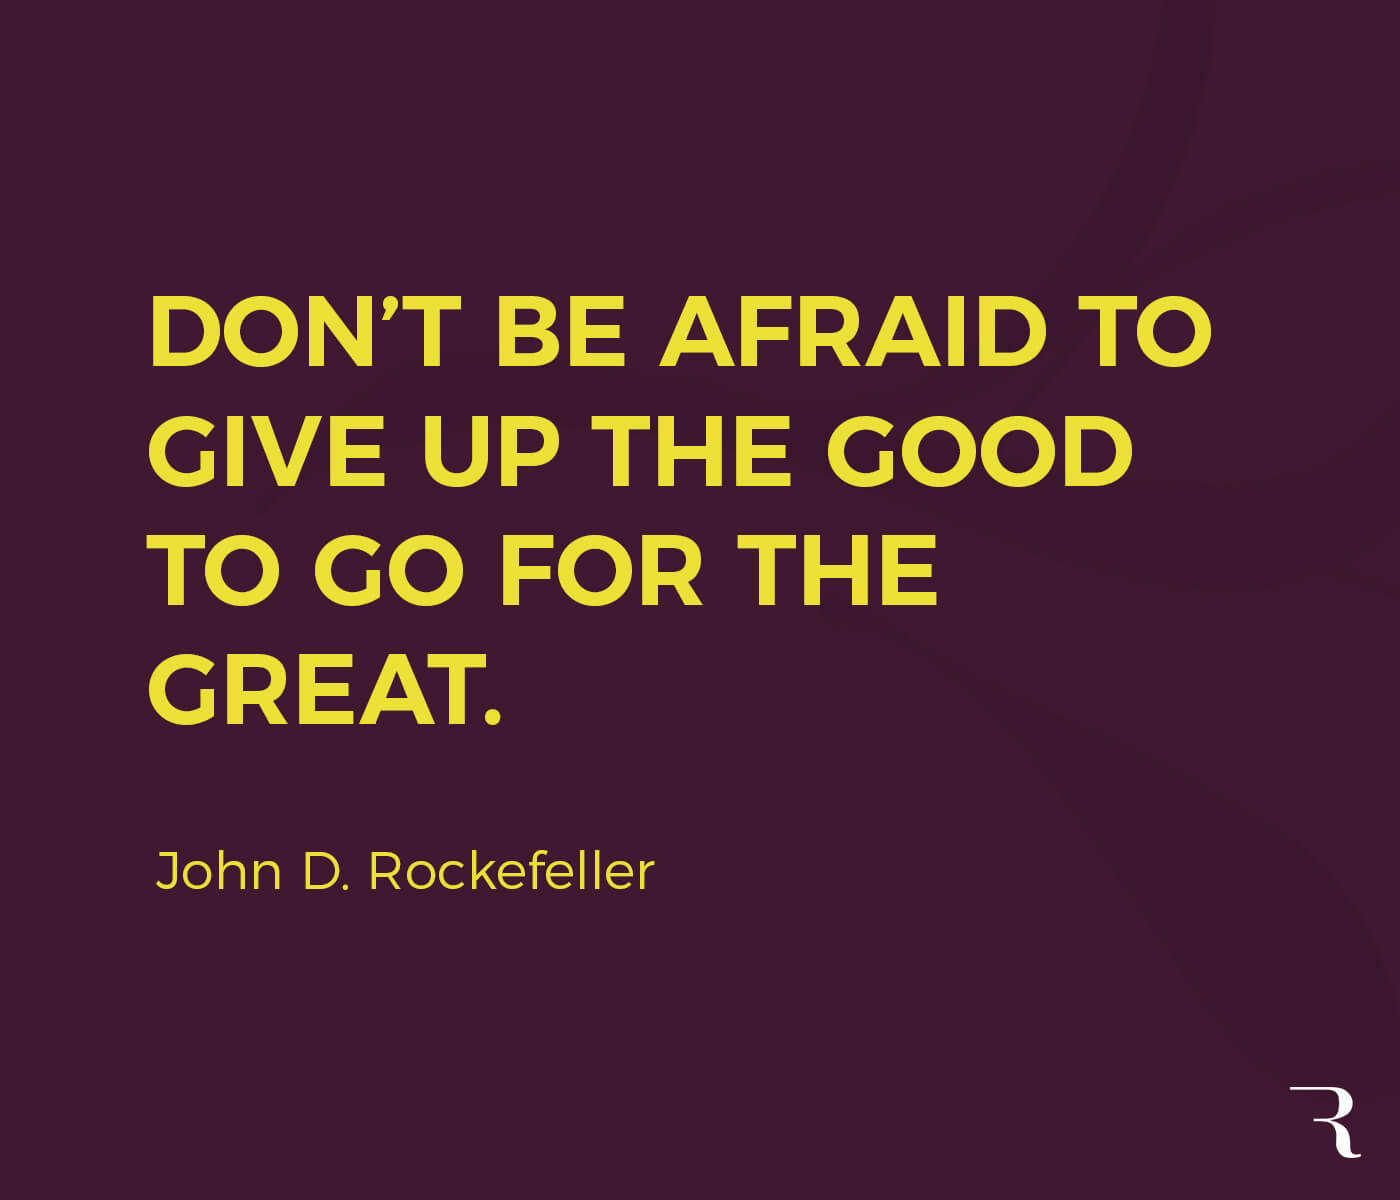 """Motivational Quotes: """"Don't be afraid to give up the good to go for the great."""" 112 Motivational Quotes to Be a Better Entrepreneur"""